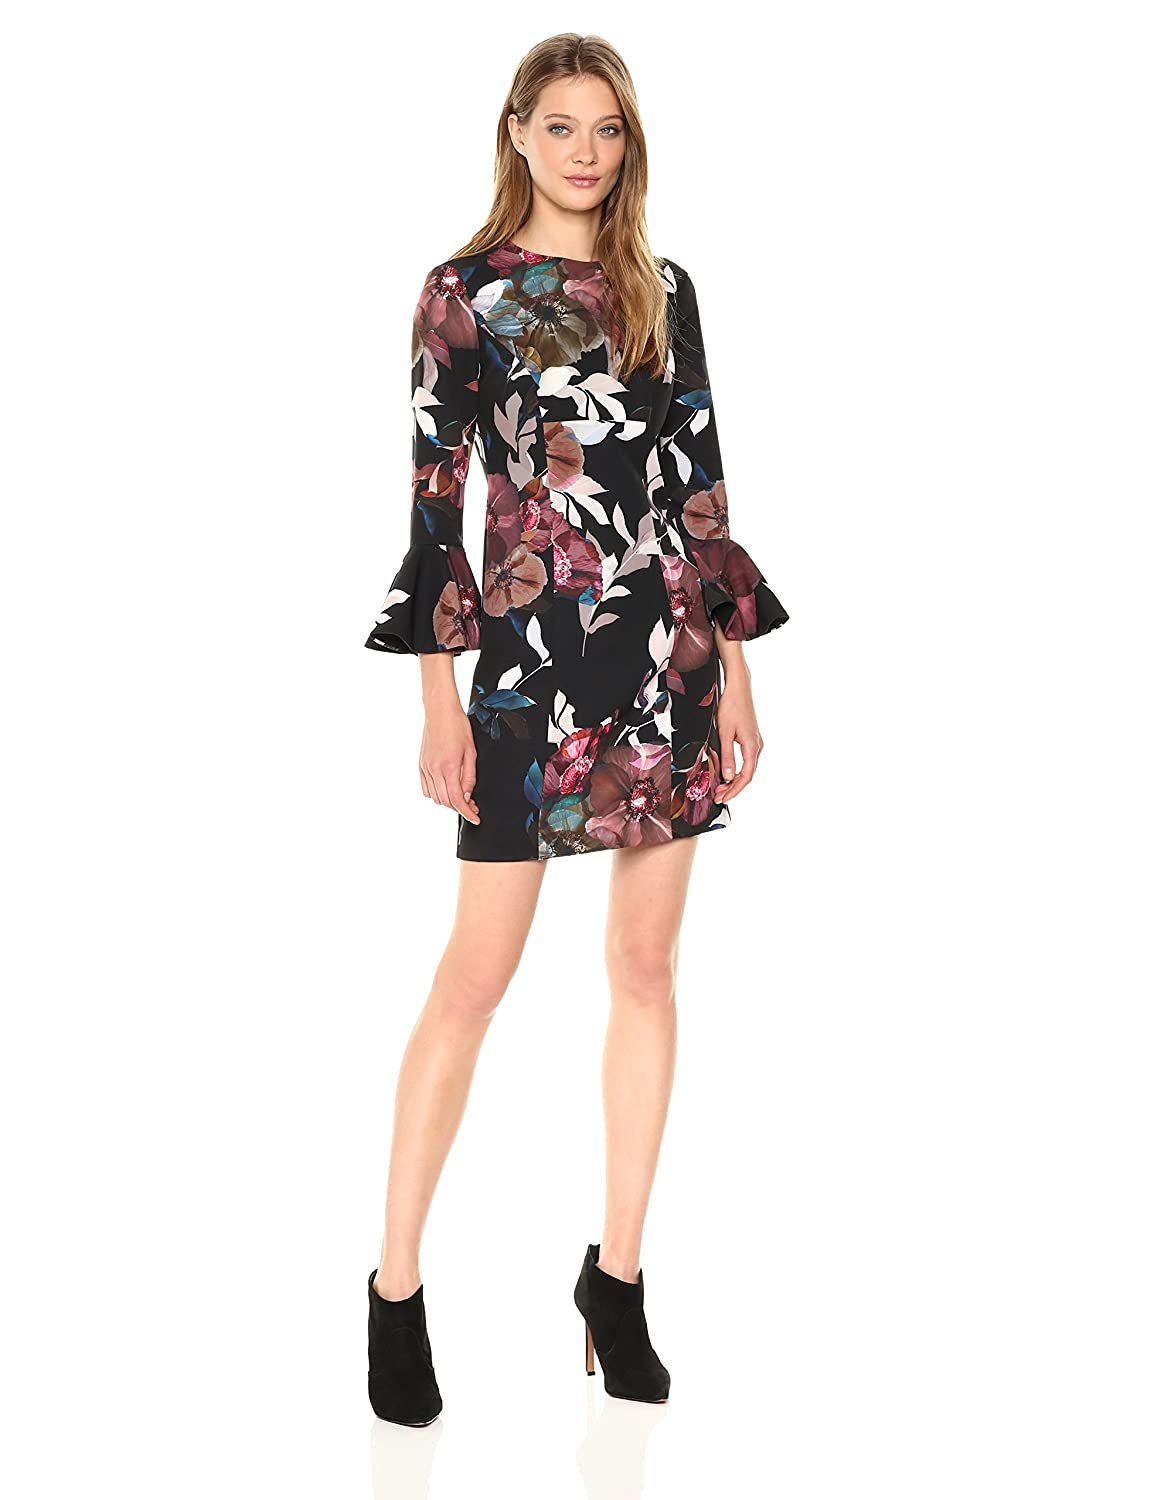 Multi Trina Turk Womens Panache 2 Faye Floral Bell Sleeve Dress Dress